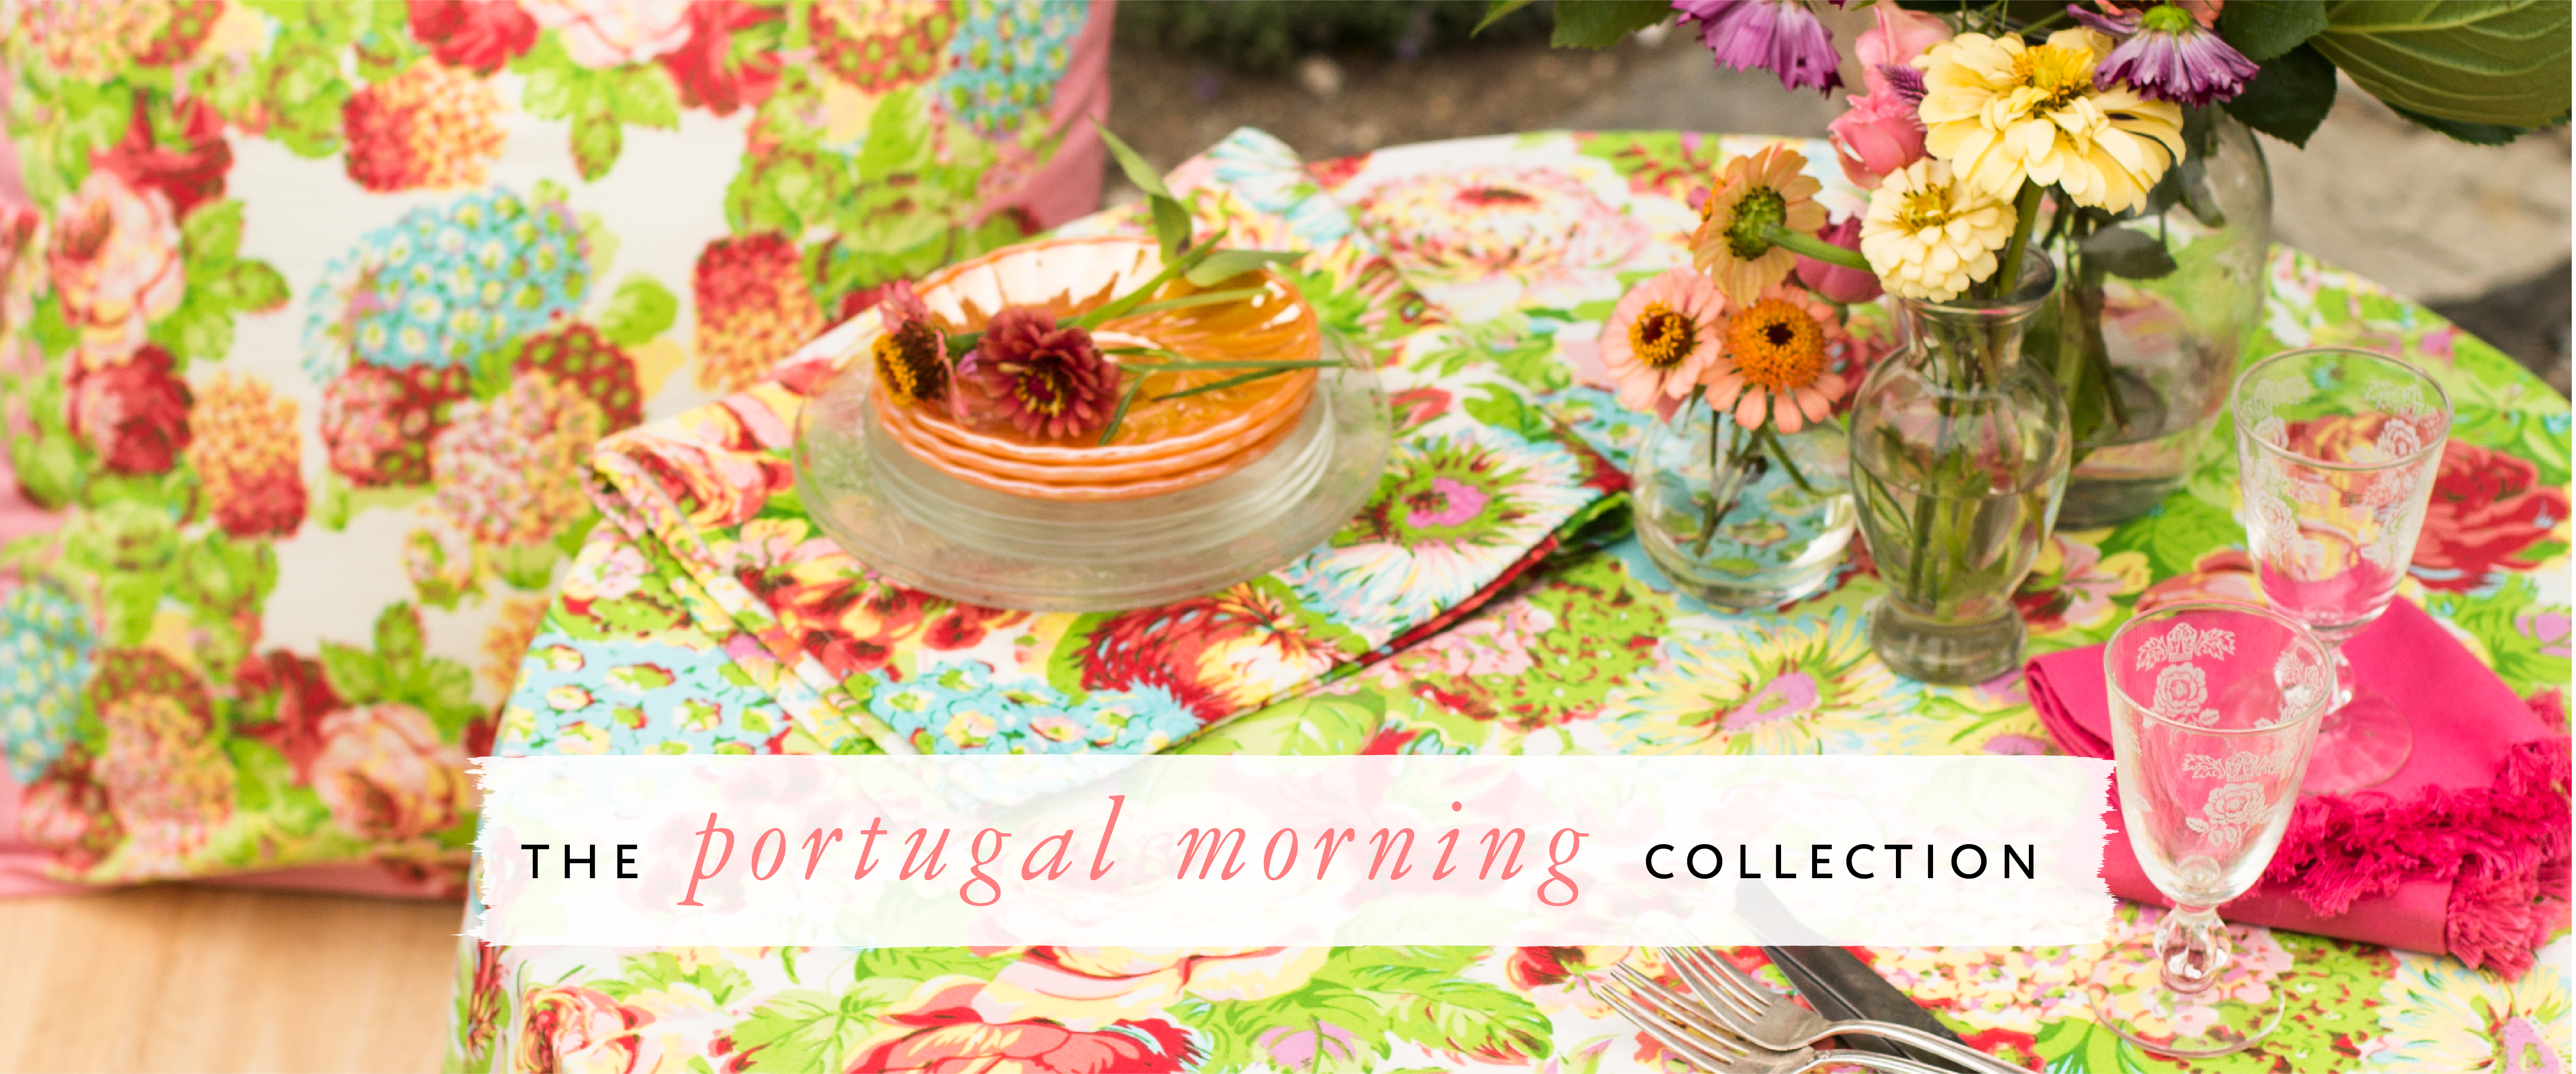 The Portugal Morning Collection